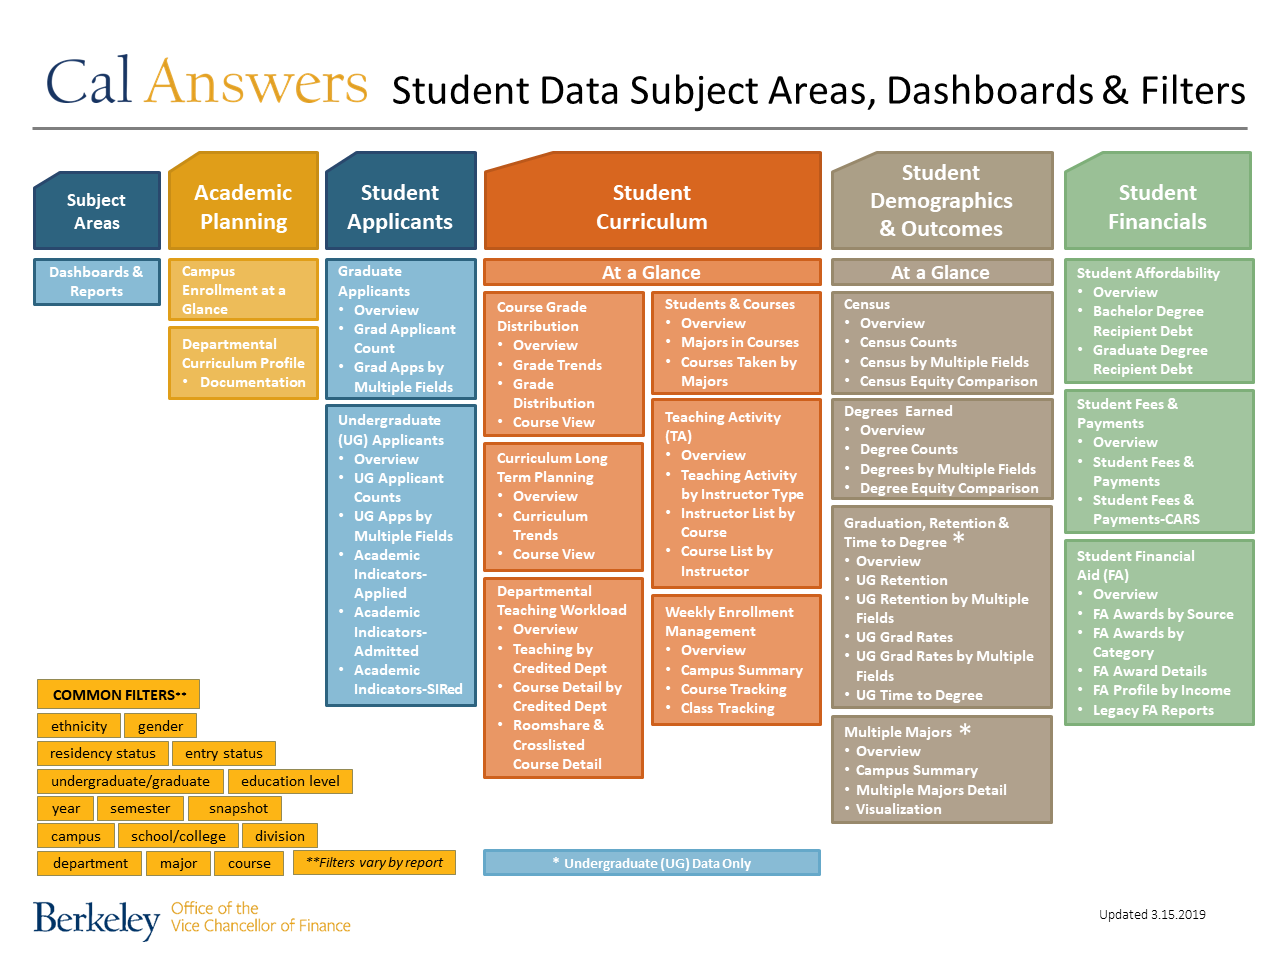 Cal Answers Student Data Dashboards Map